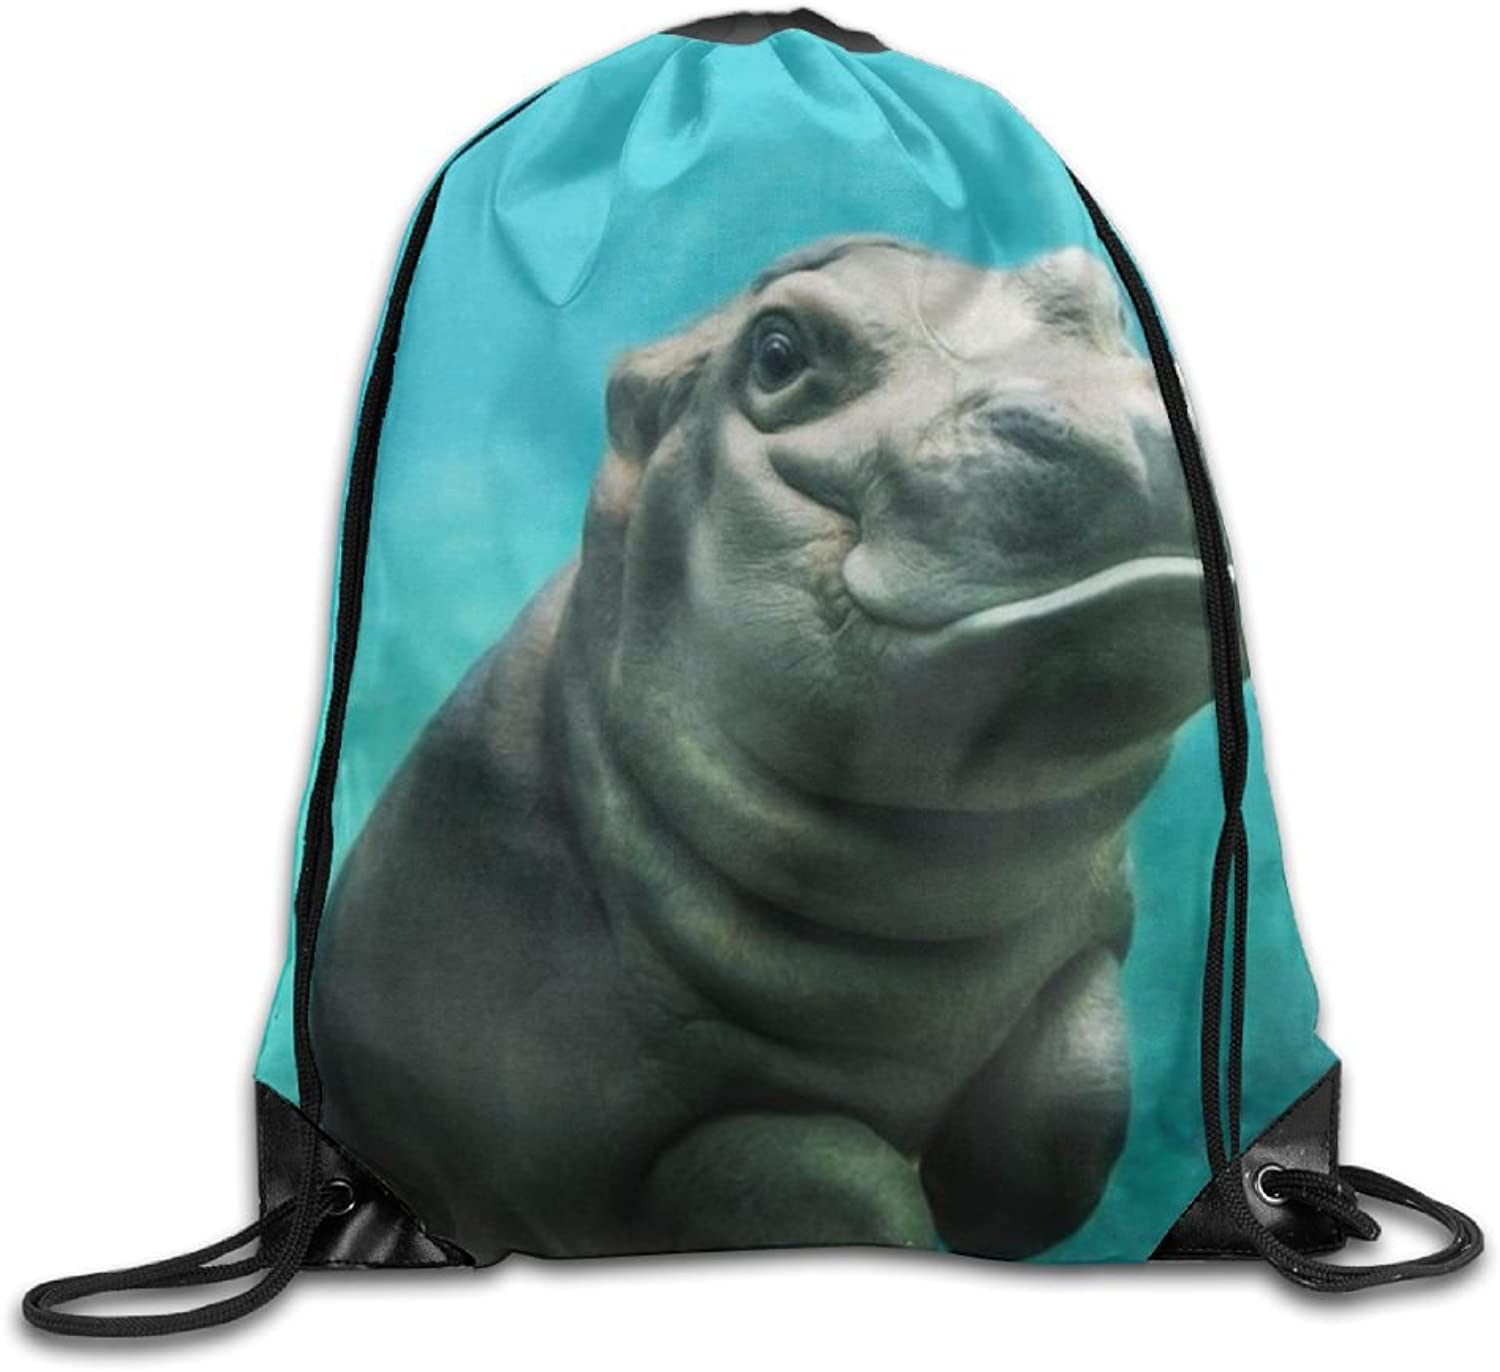 Baby Hippo Drawstring Backpack Rucksack Shoulder Bags Training Gym Sack for Man and Women